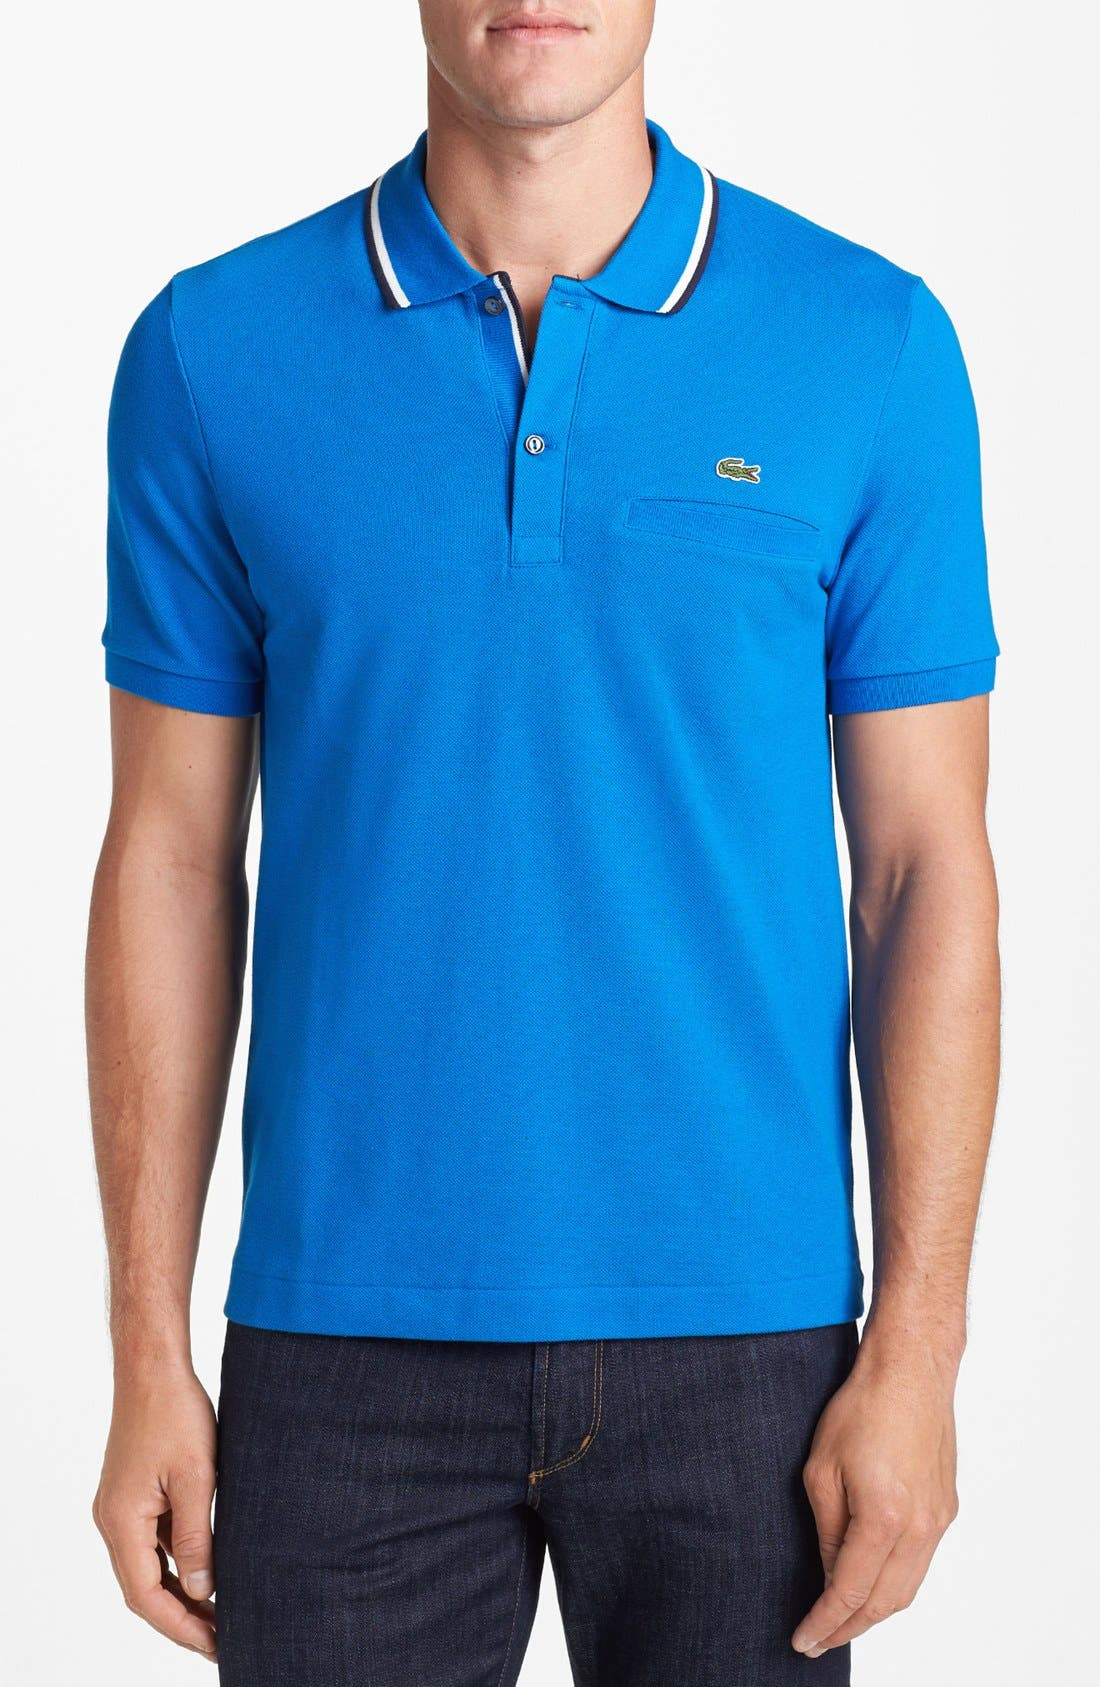 Alternate Image 1 Selected - Lacoste Tipped Piqué Polo